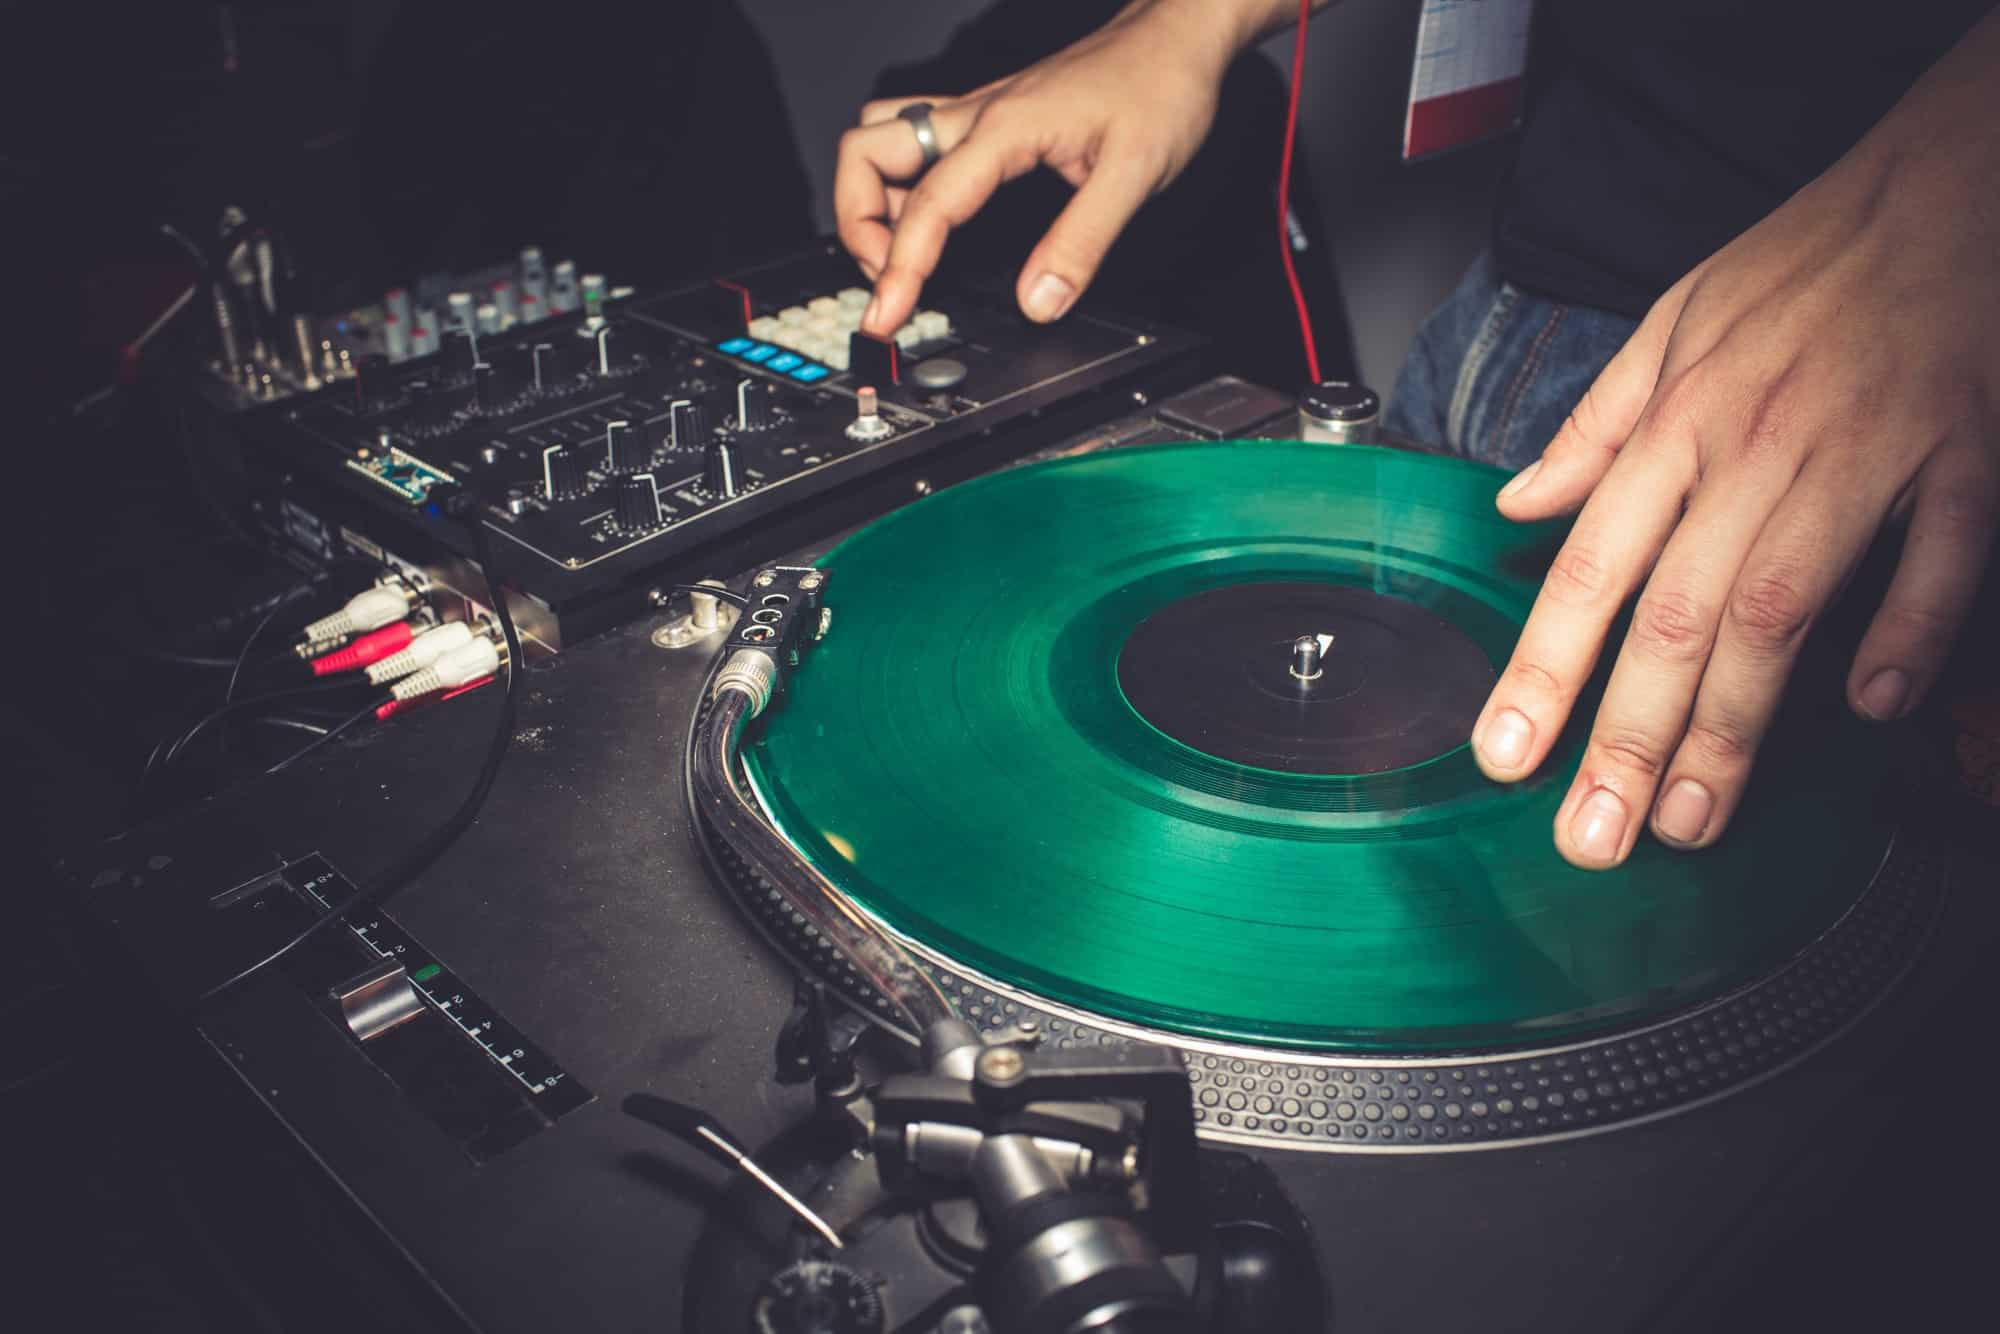 31 DJ skills you should have - How to be a better DJ in 2019